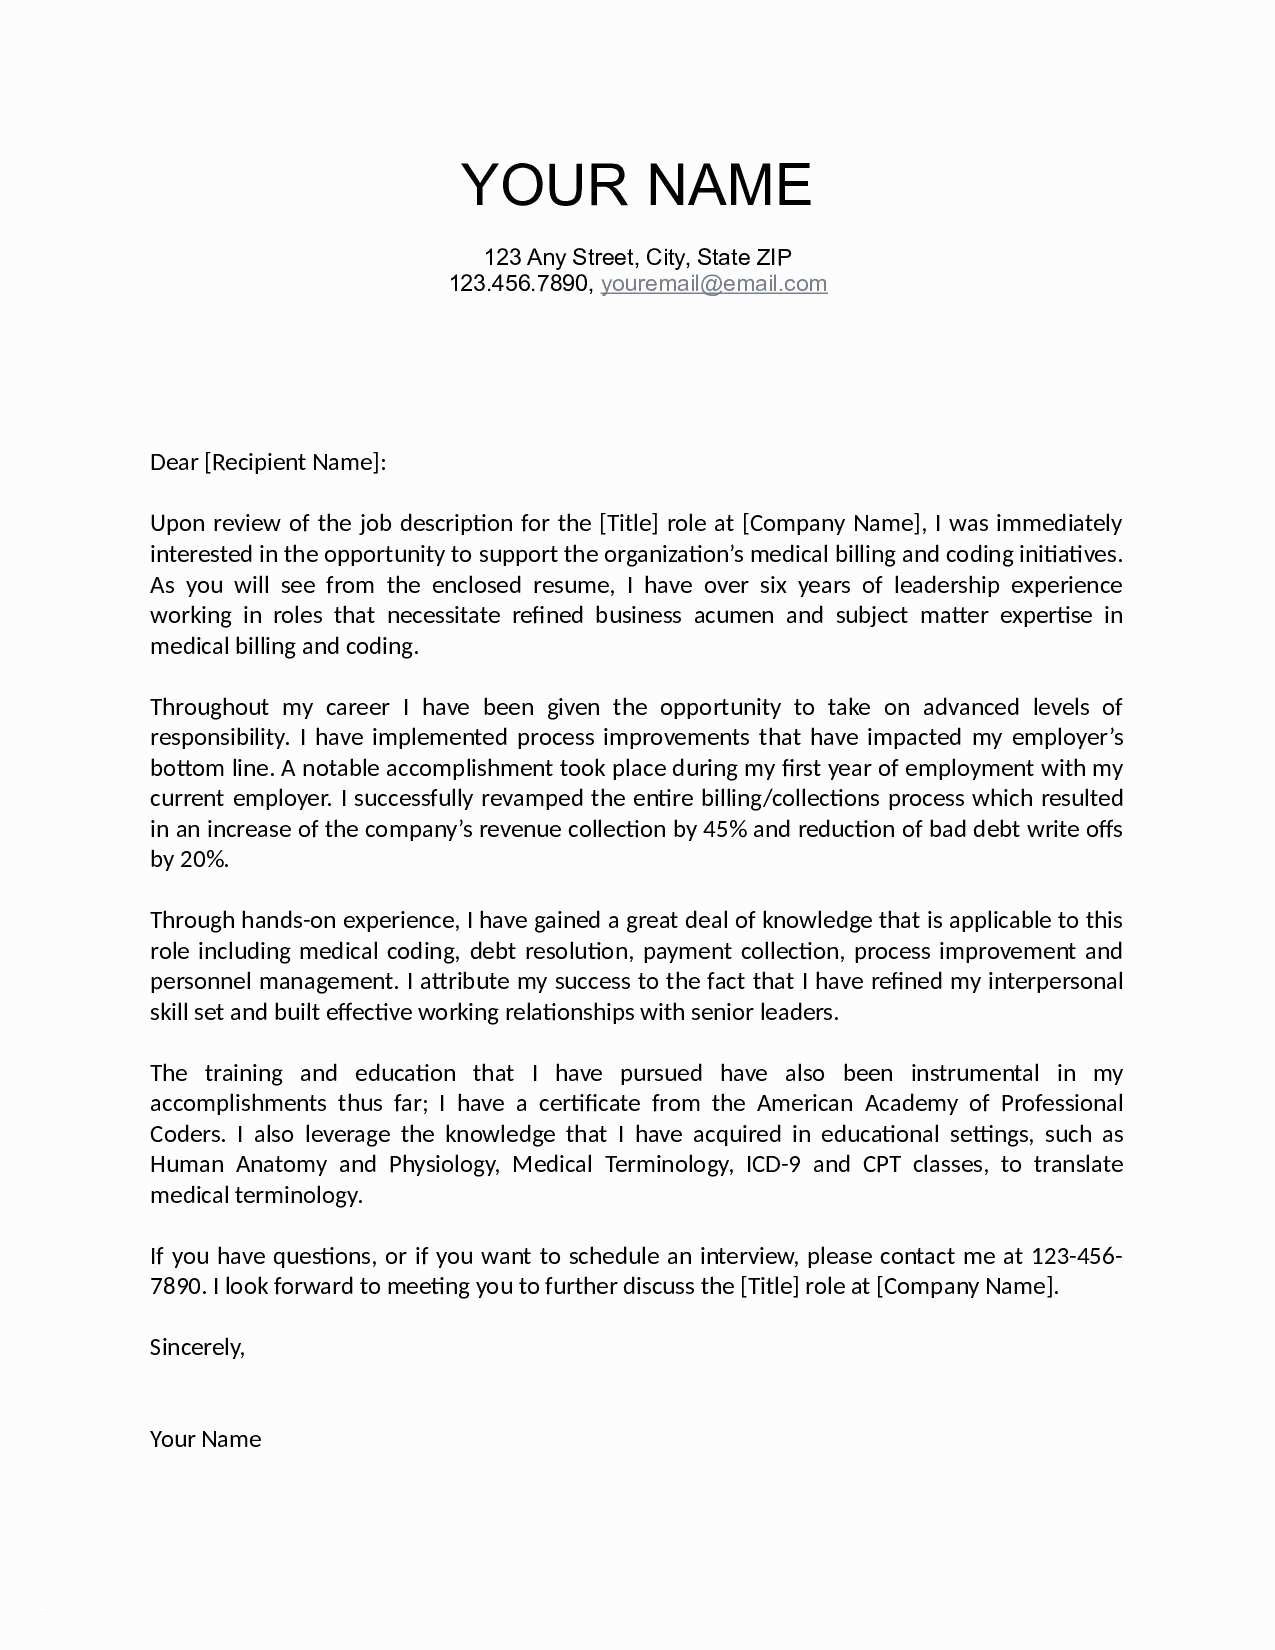 Awesome Cover Letter Template - Resume and Cover Letters Templates Awesome Job Fer Letter Template